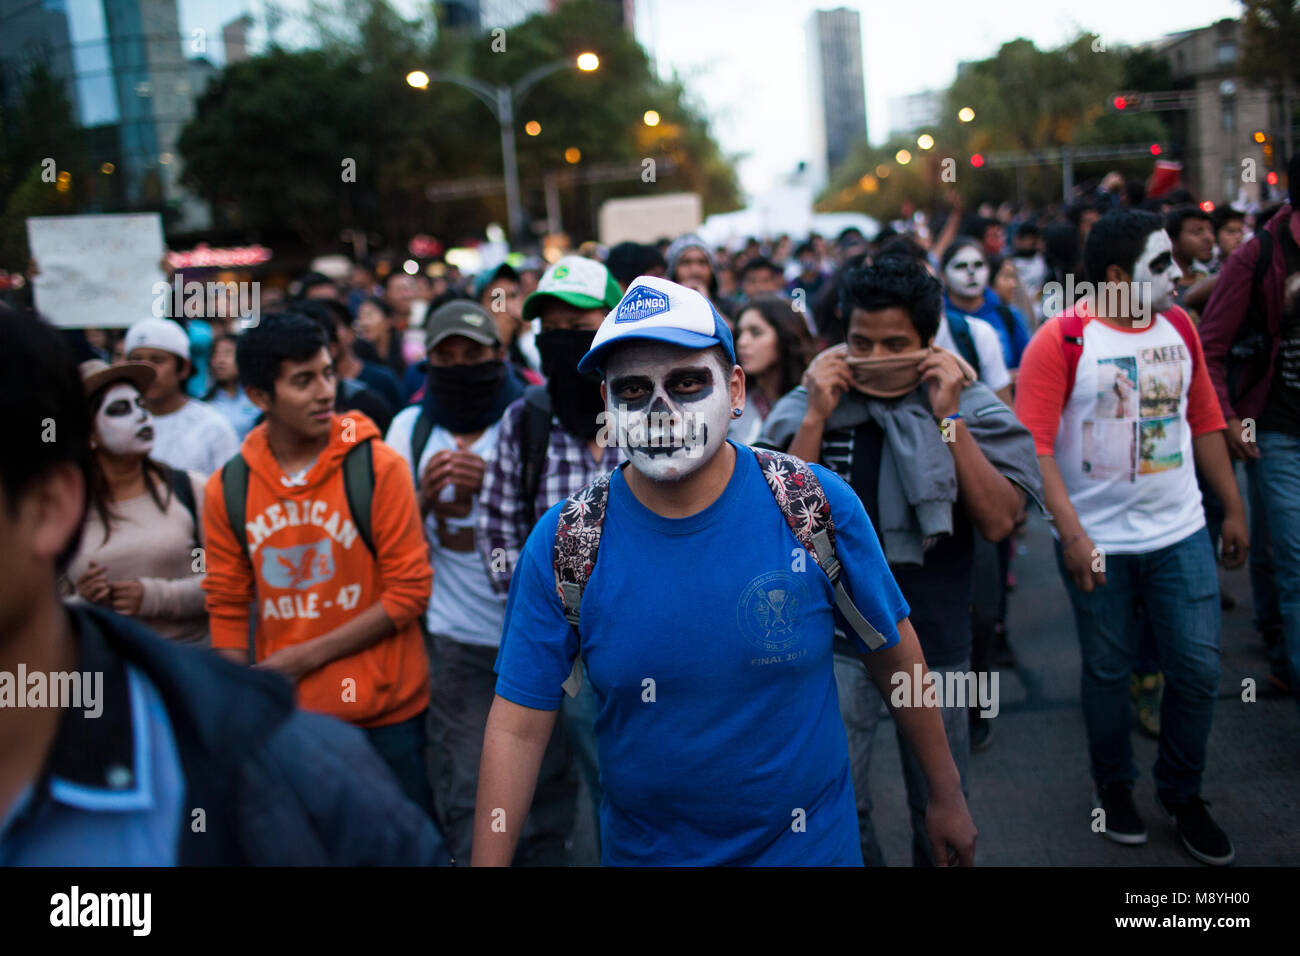 People march through Mexico City protesting for the return of 43 missing Normalista students who were taken from Stock Photo